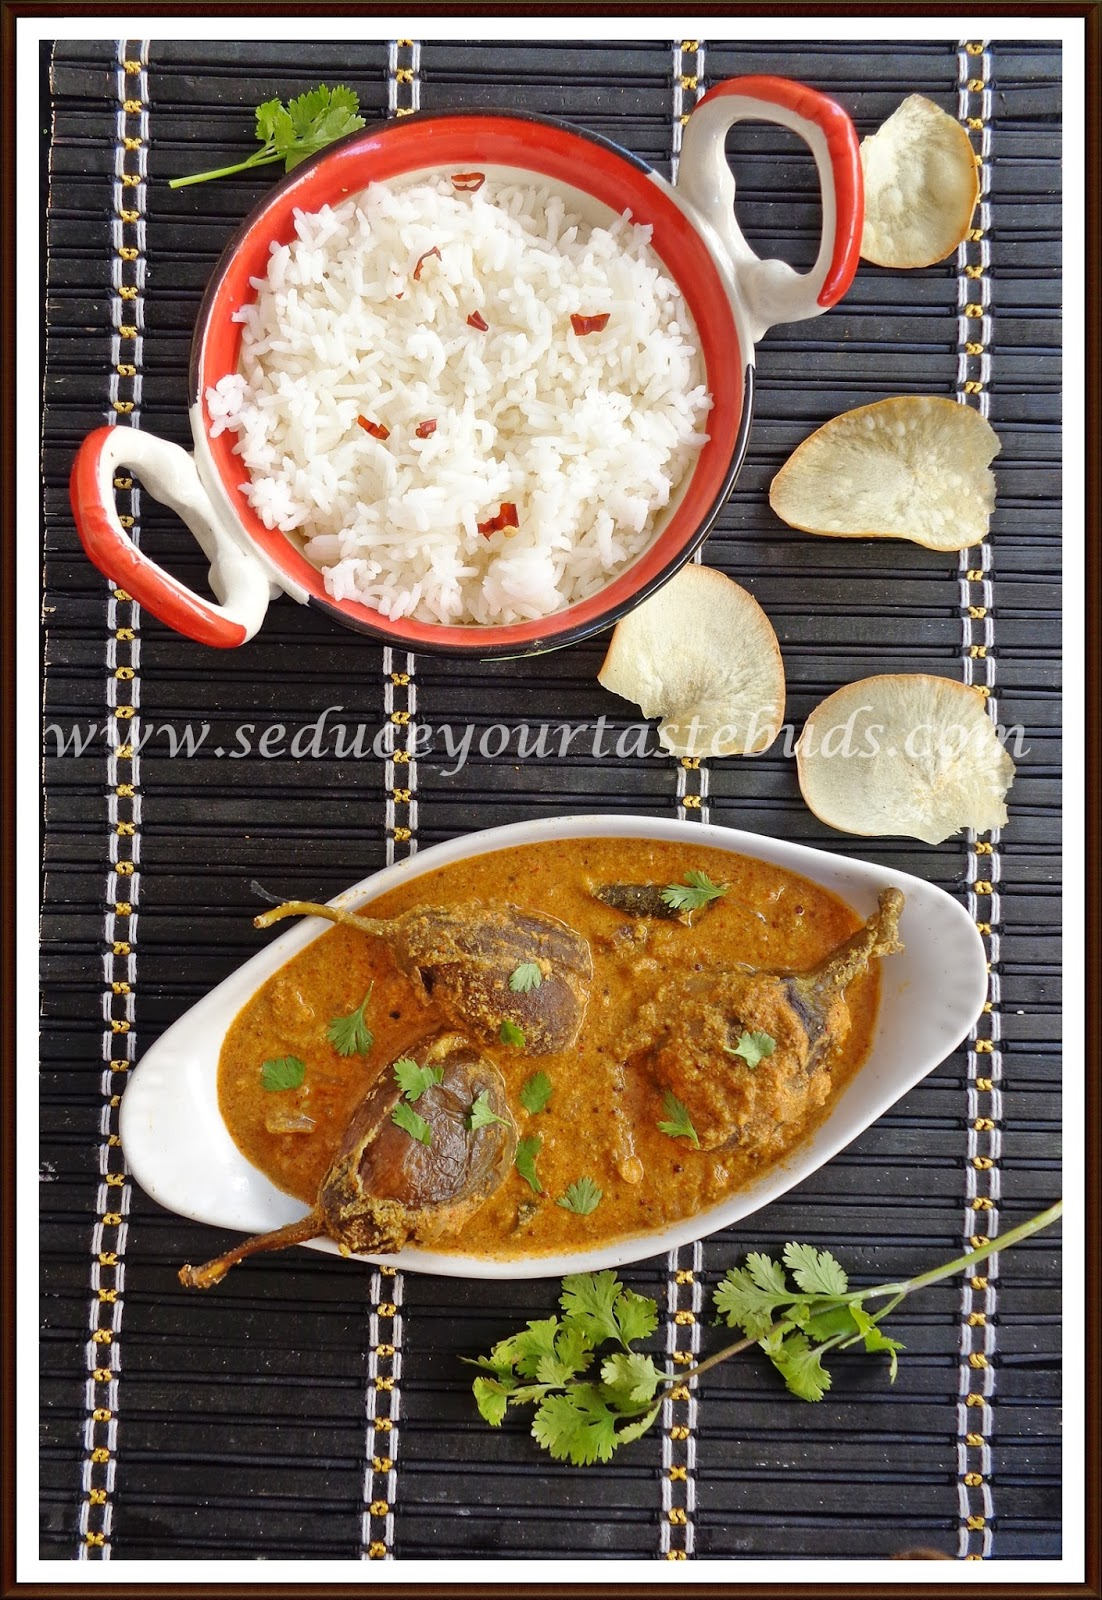 Stuffed baby brinjal curry seduce your tastebuds i adapted this dish from nalinis blog and it was served when my nephew stayed with us for a couple of days last summerhe is one of the few who forumfinder Gallery